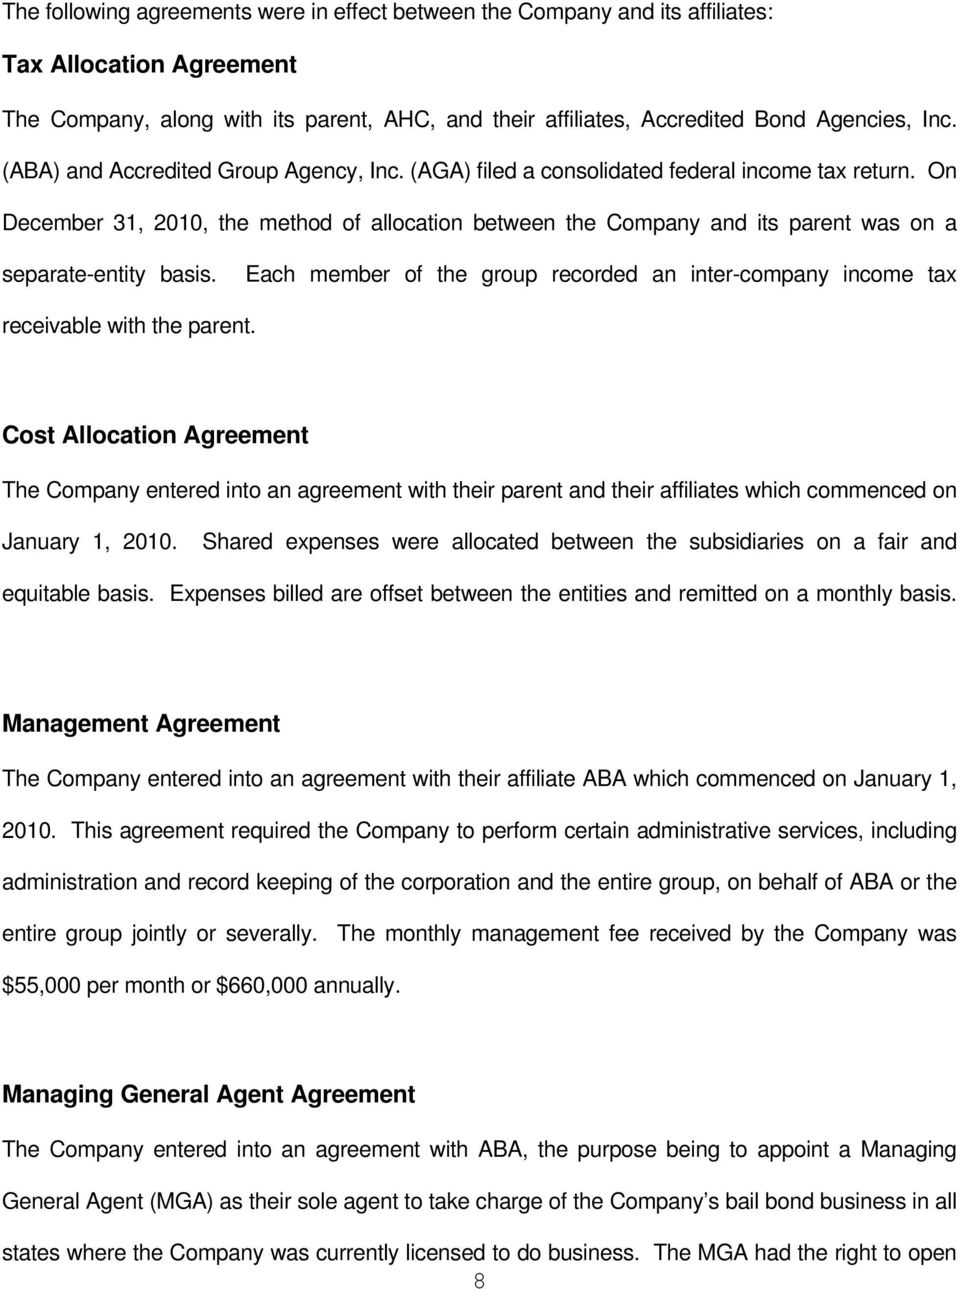 On December 31, 2010, the method of allocation between the Company and its parent was on a separate-entity basis.